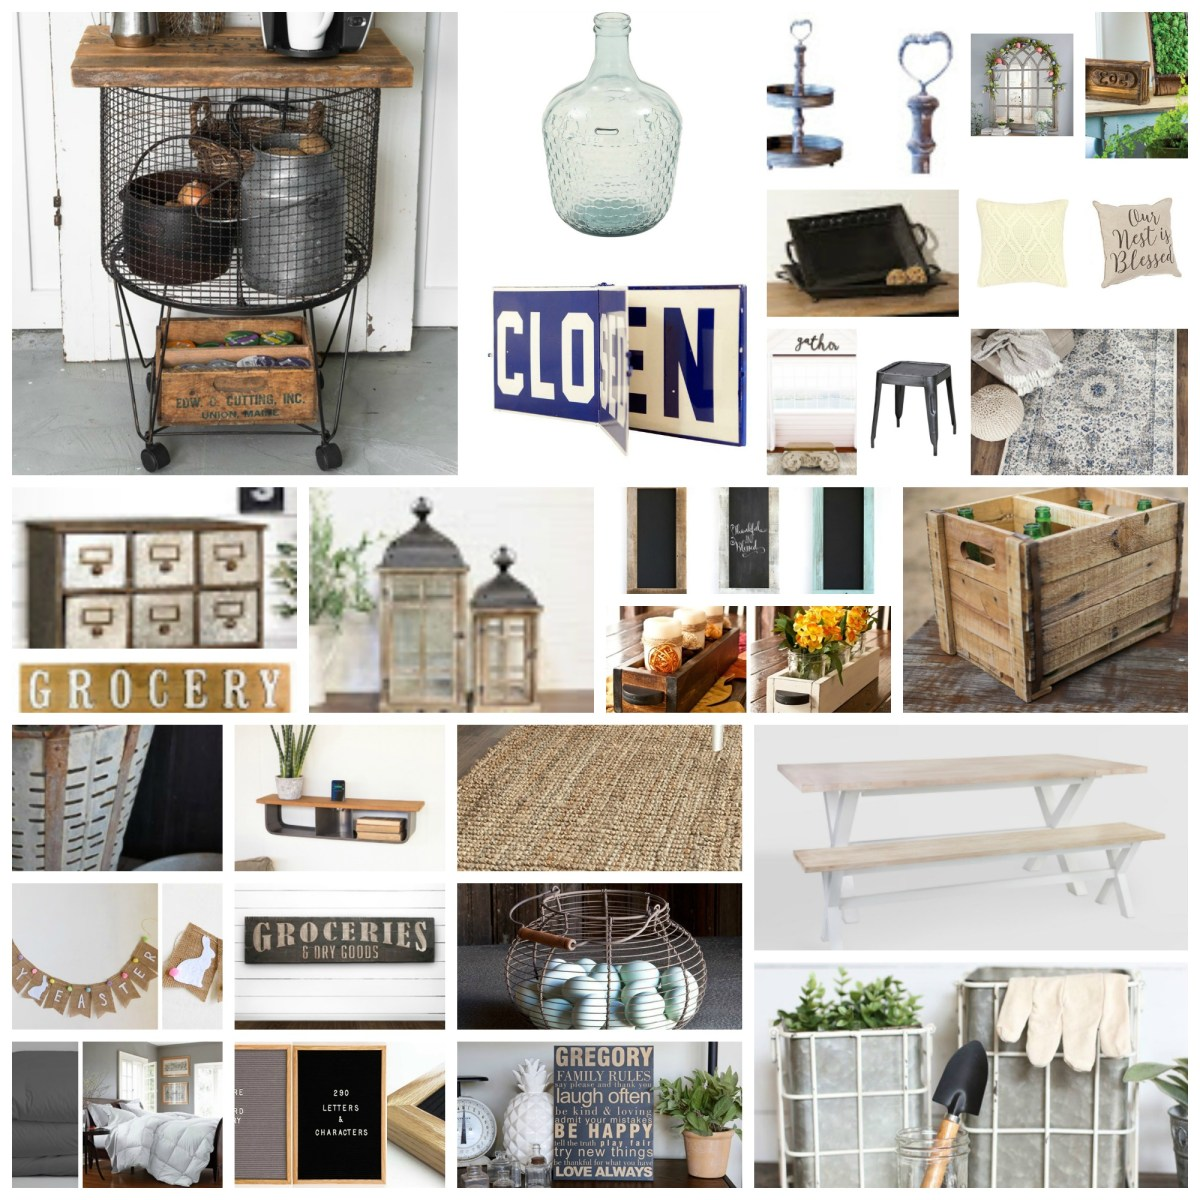 Home Decor Daily Deals: Monday, March 20, 2017